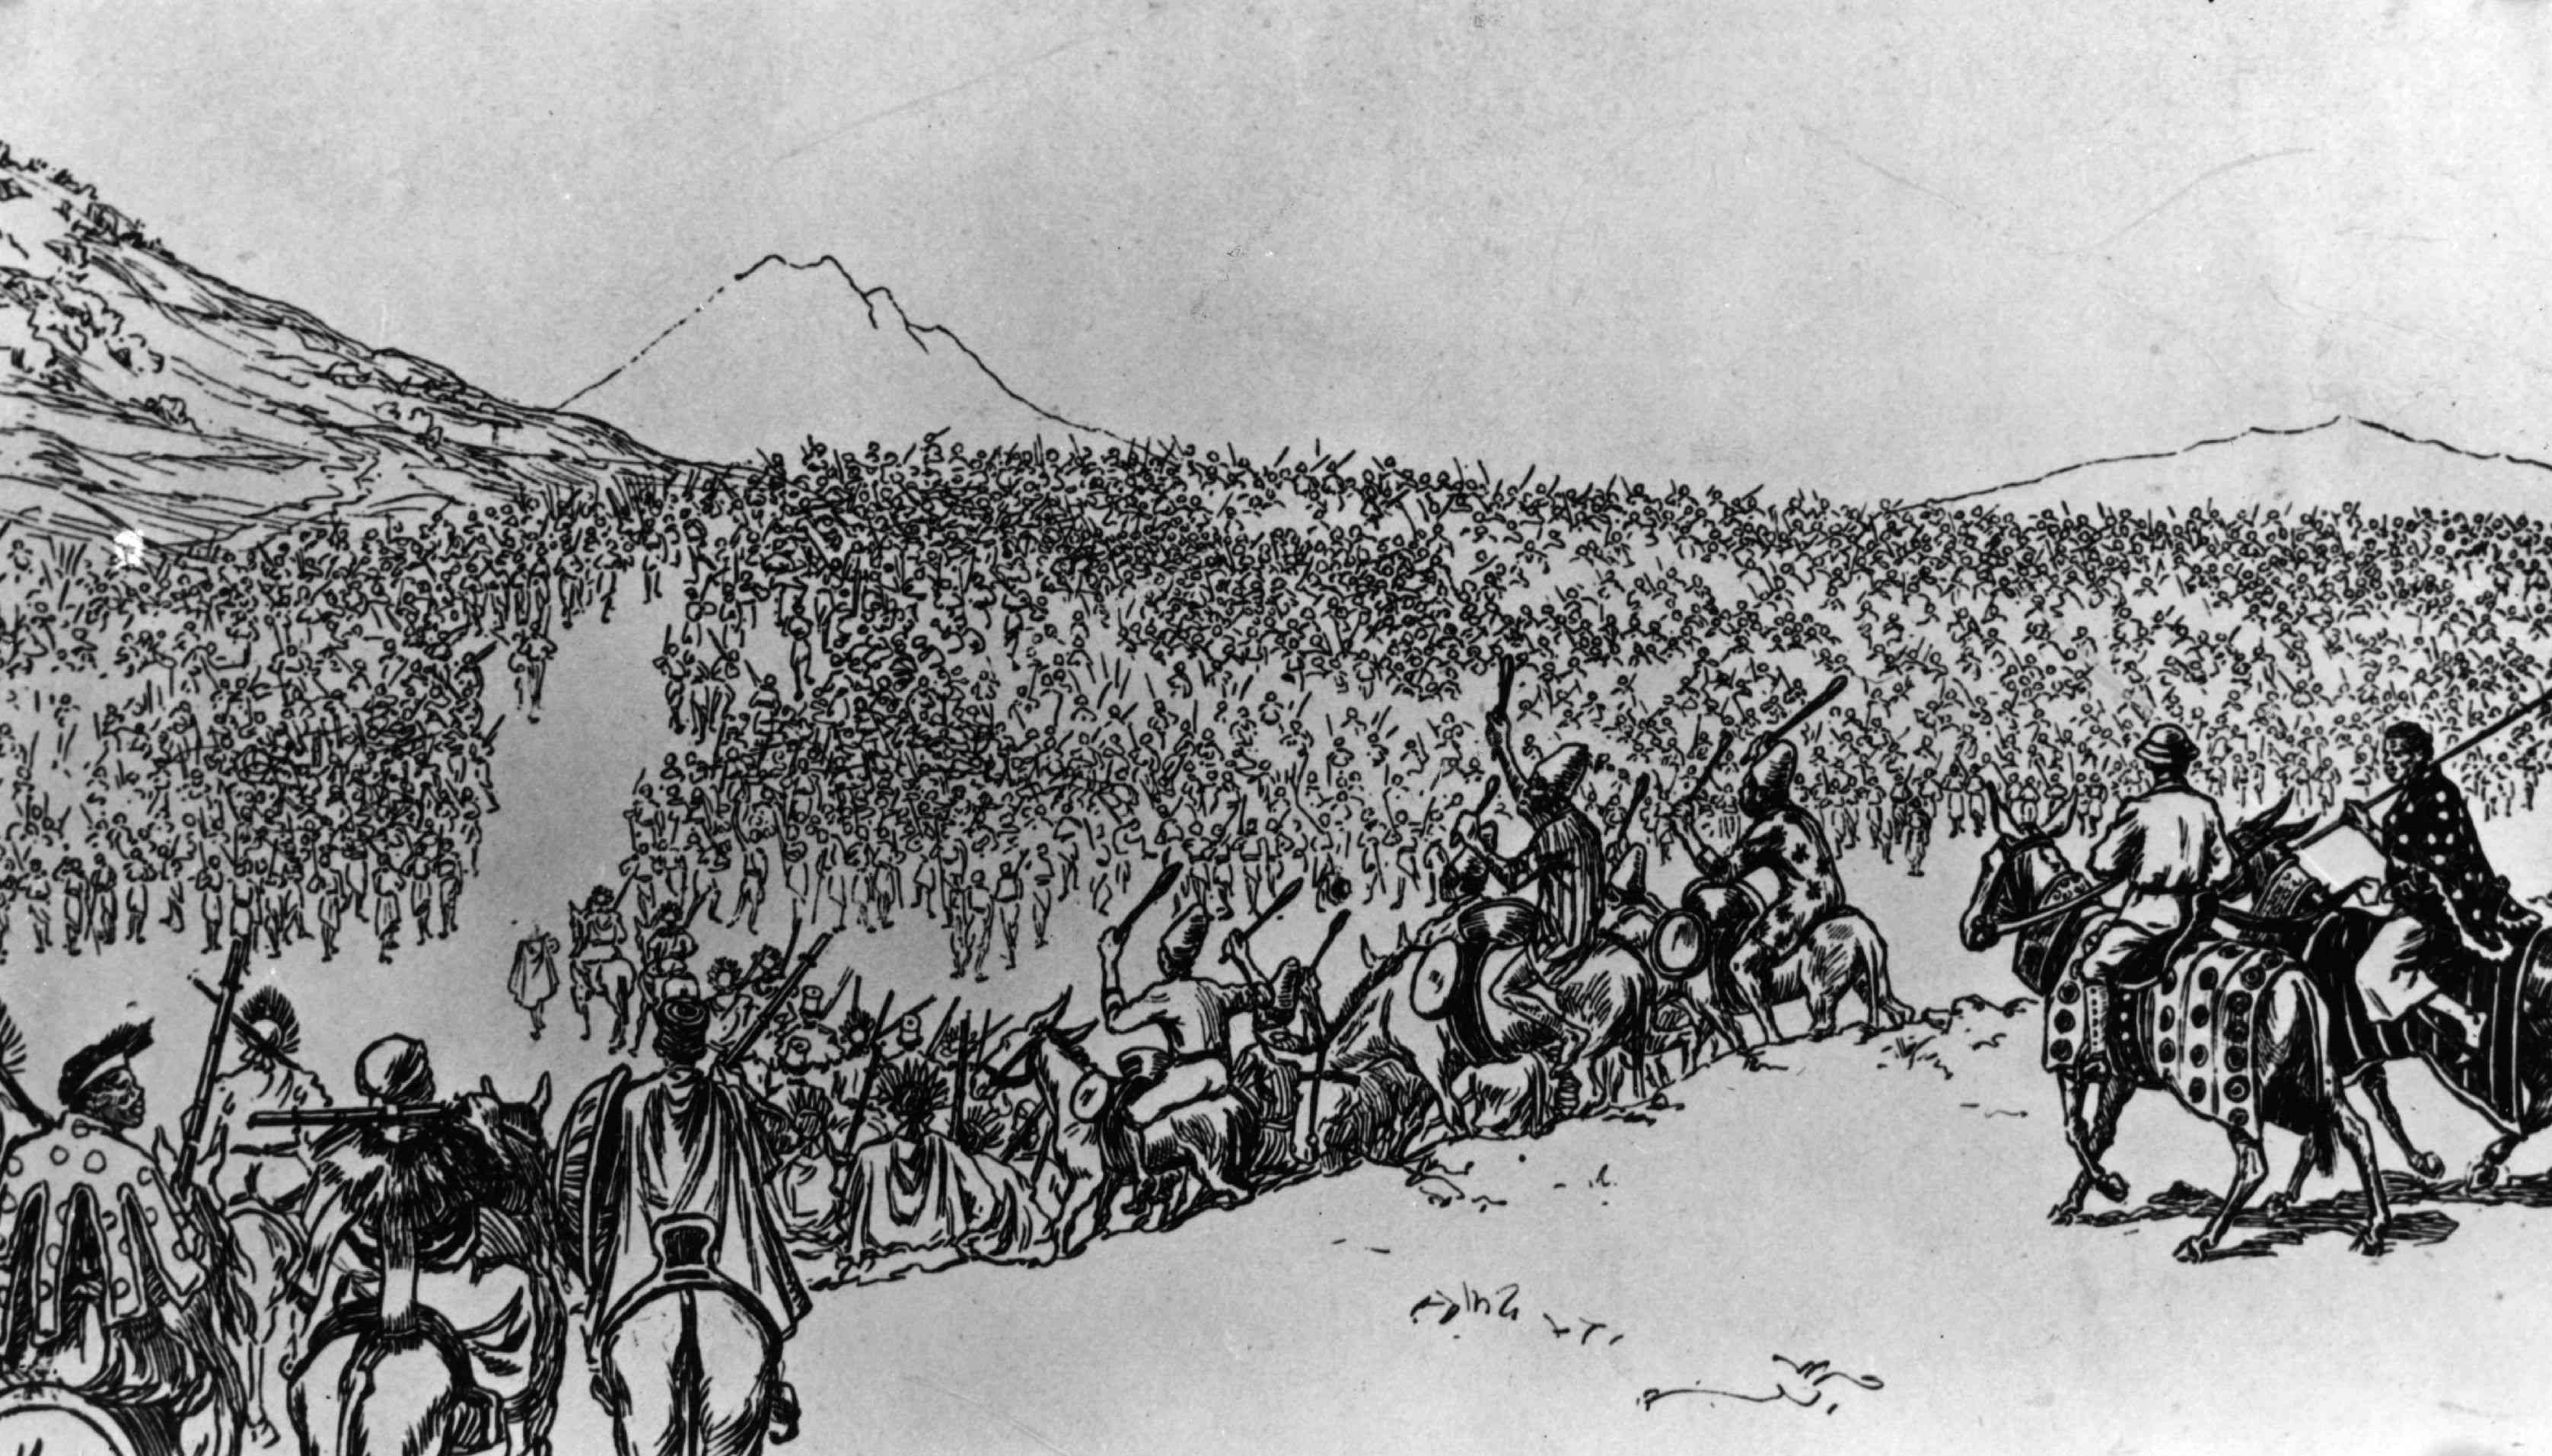 Ethiopian troops leaving Addis Ababa before defeating the Italian invaders at the Battle of Adwa, during the war of 1896.